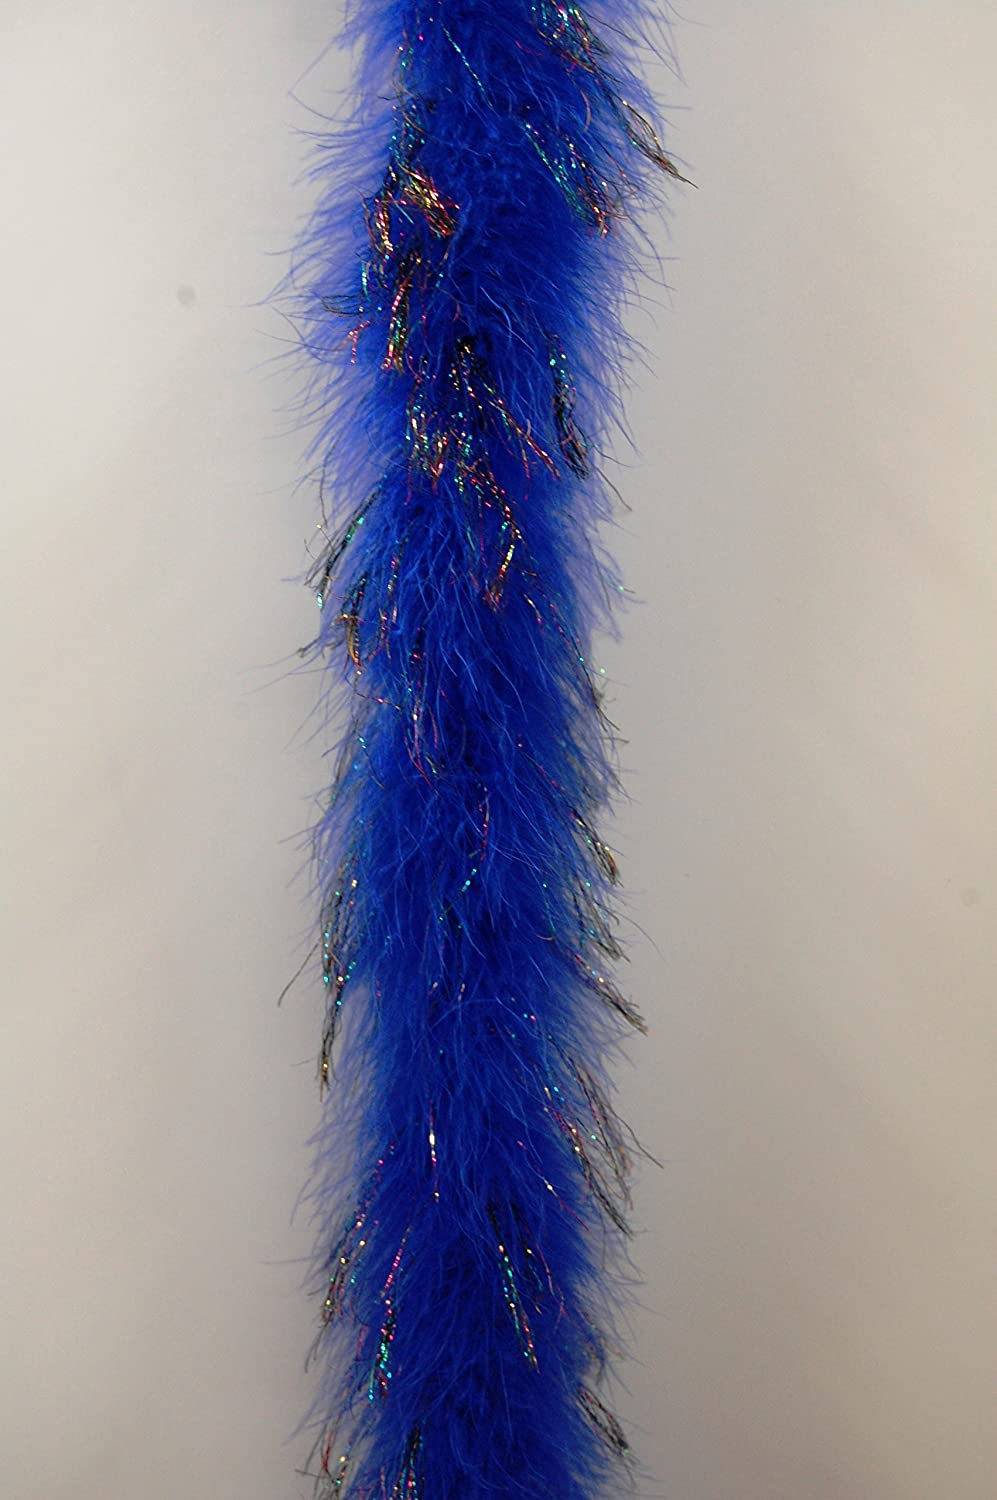 72 22 Grams Royal Blue w//Black IRIS Lurex Marabou Feather Boa 2 Yards Long